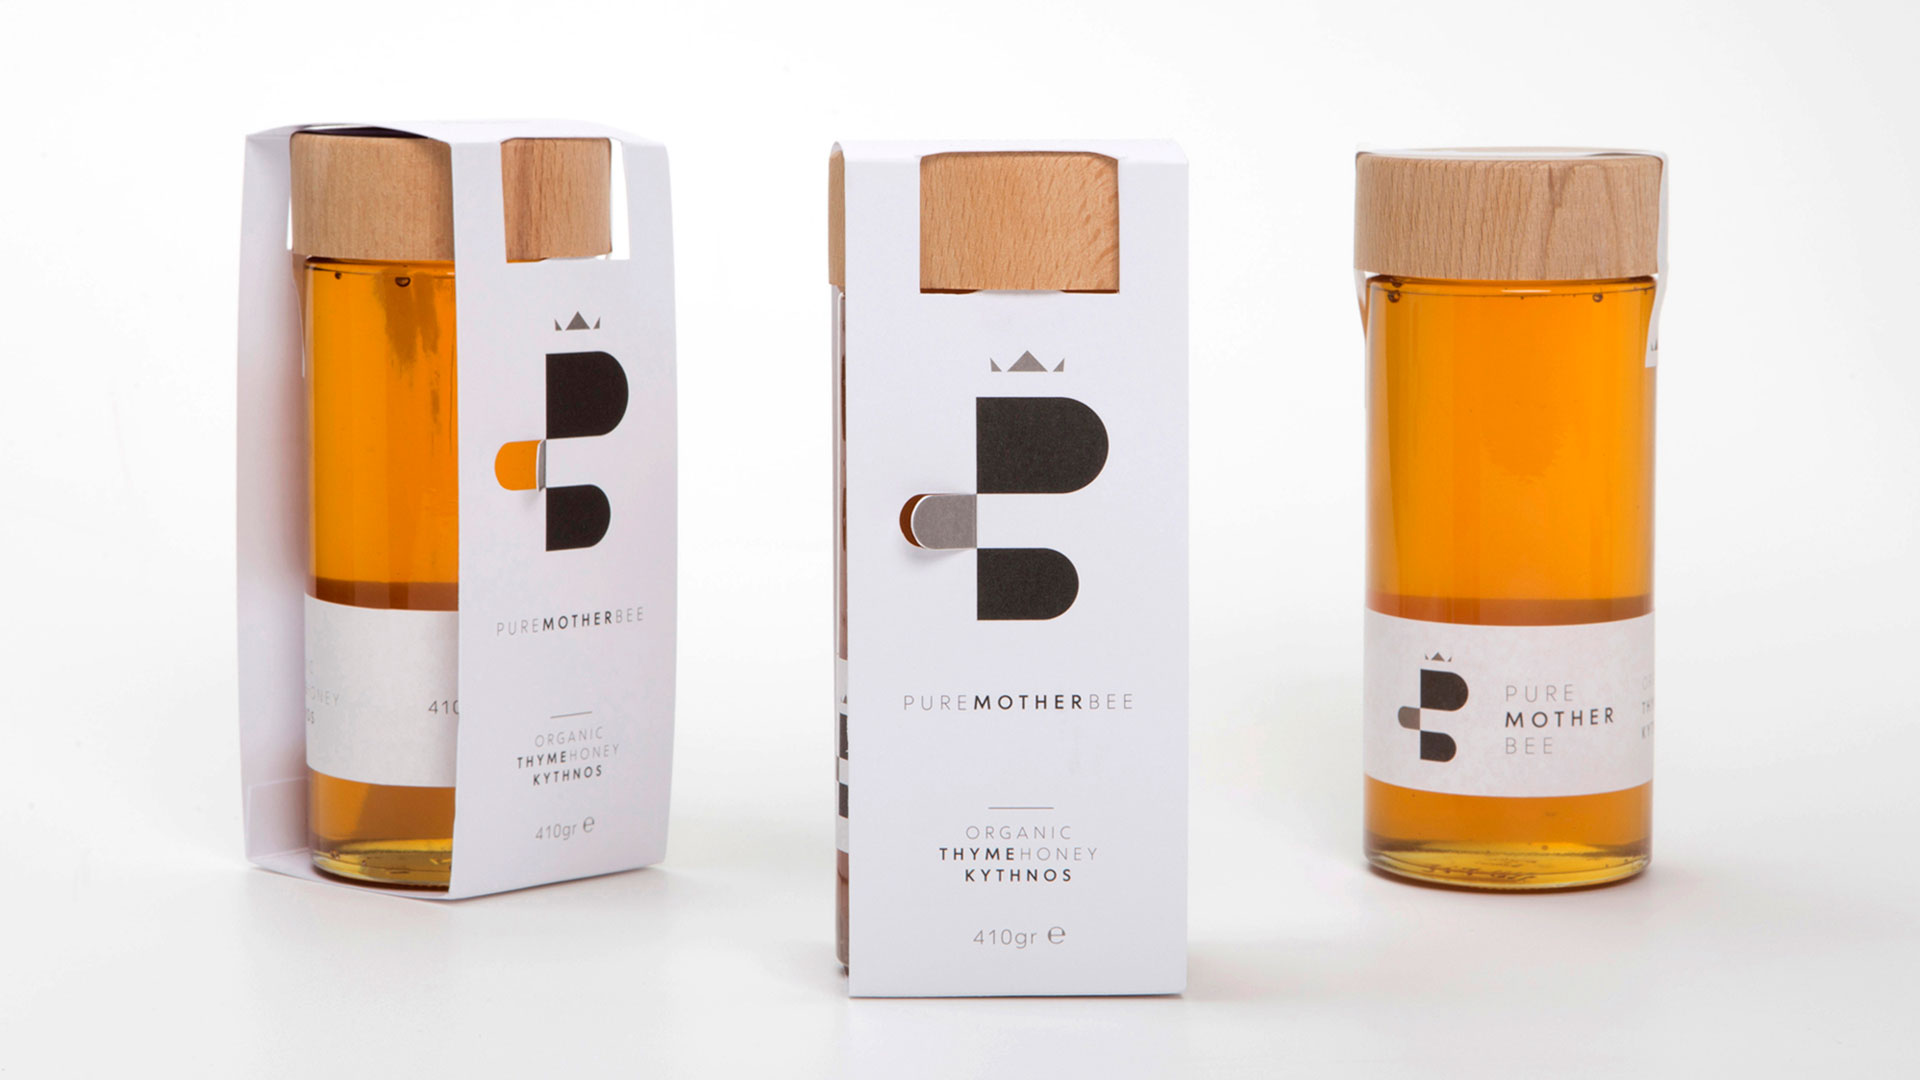 Pure Mother Bee Packaging - PaperSpecs